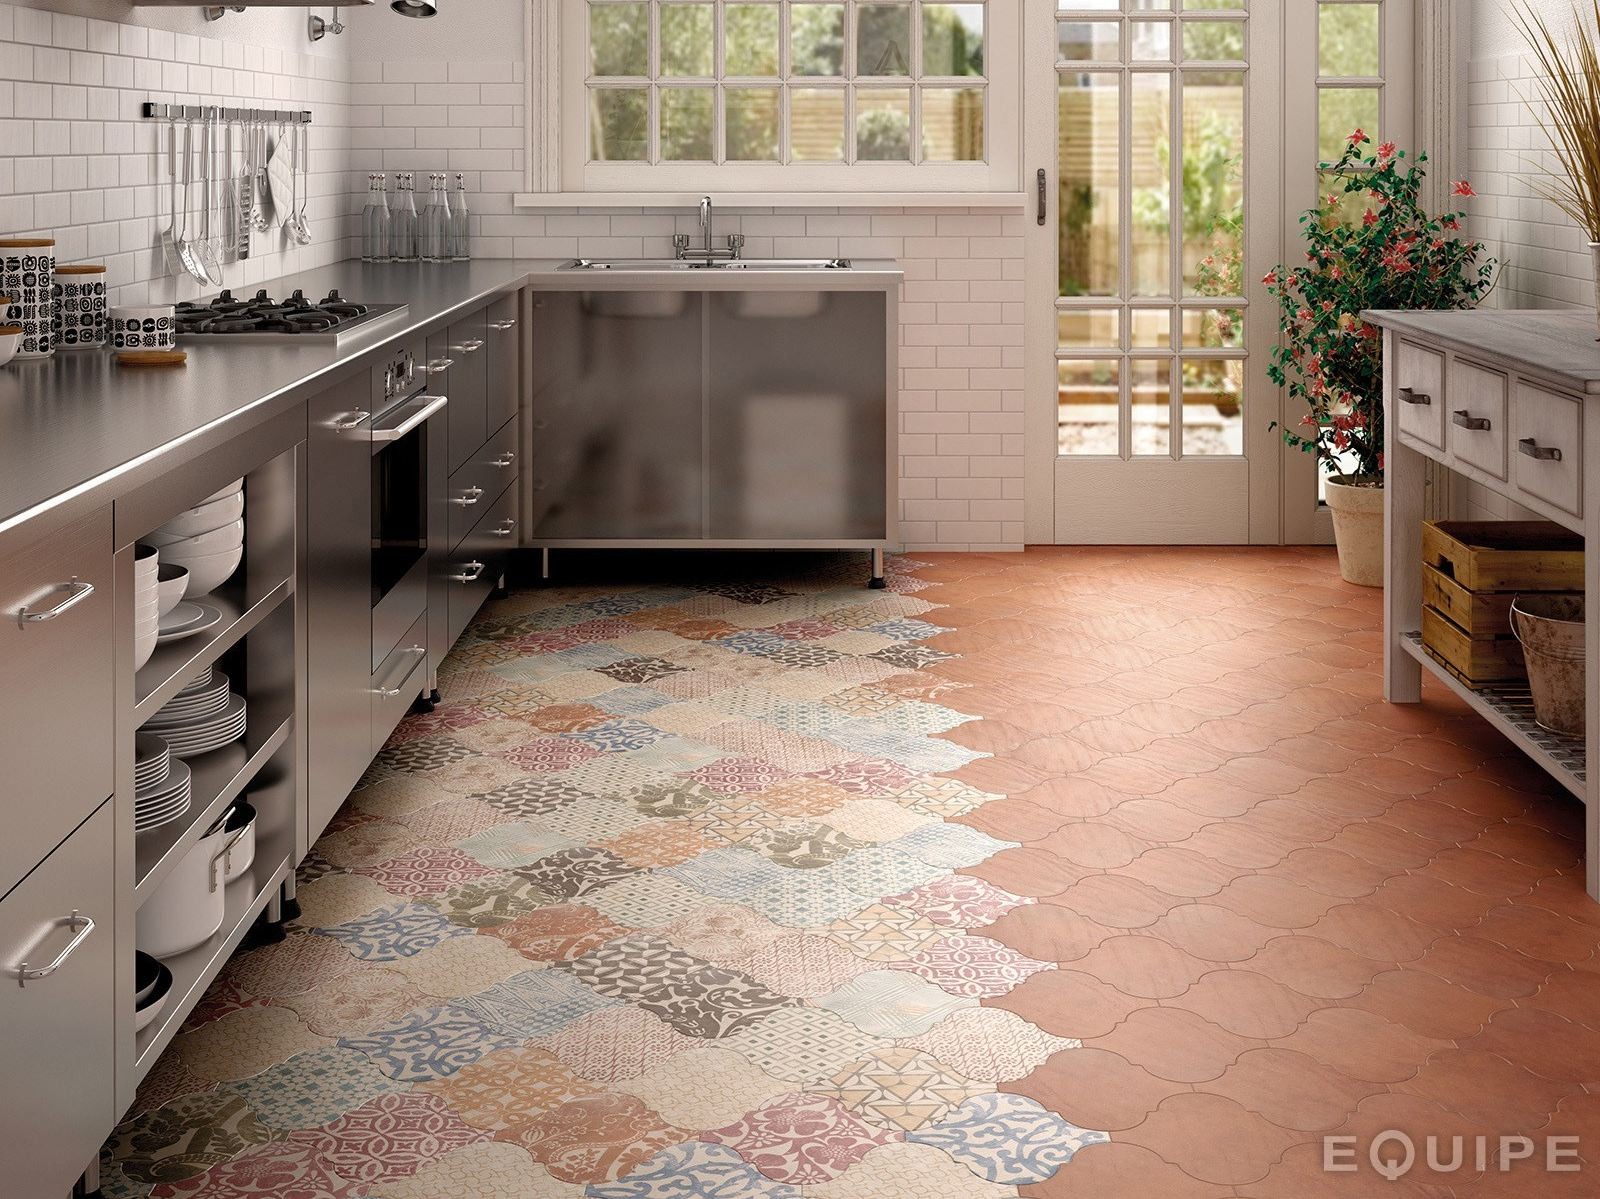 Sensible choice kitchen floor tiles for classy finish kitchen floor tile view in gallery arabesque tile kitchen floor patchwork equipe 4jpg dailygadgetfo Image collections